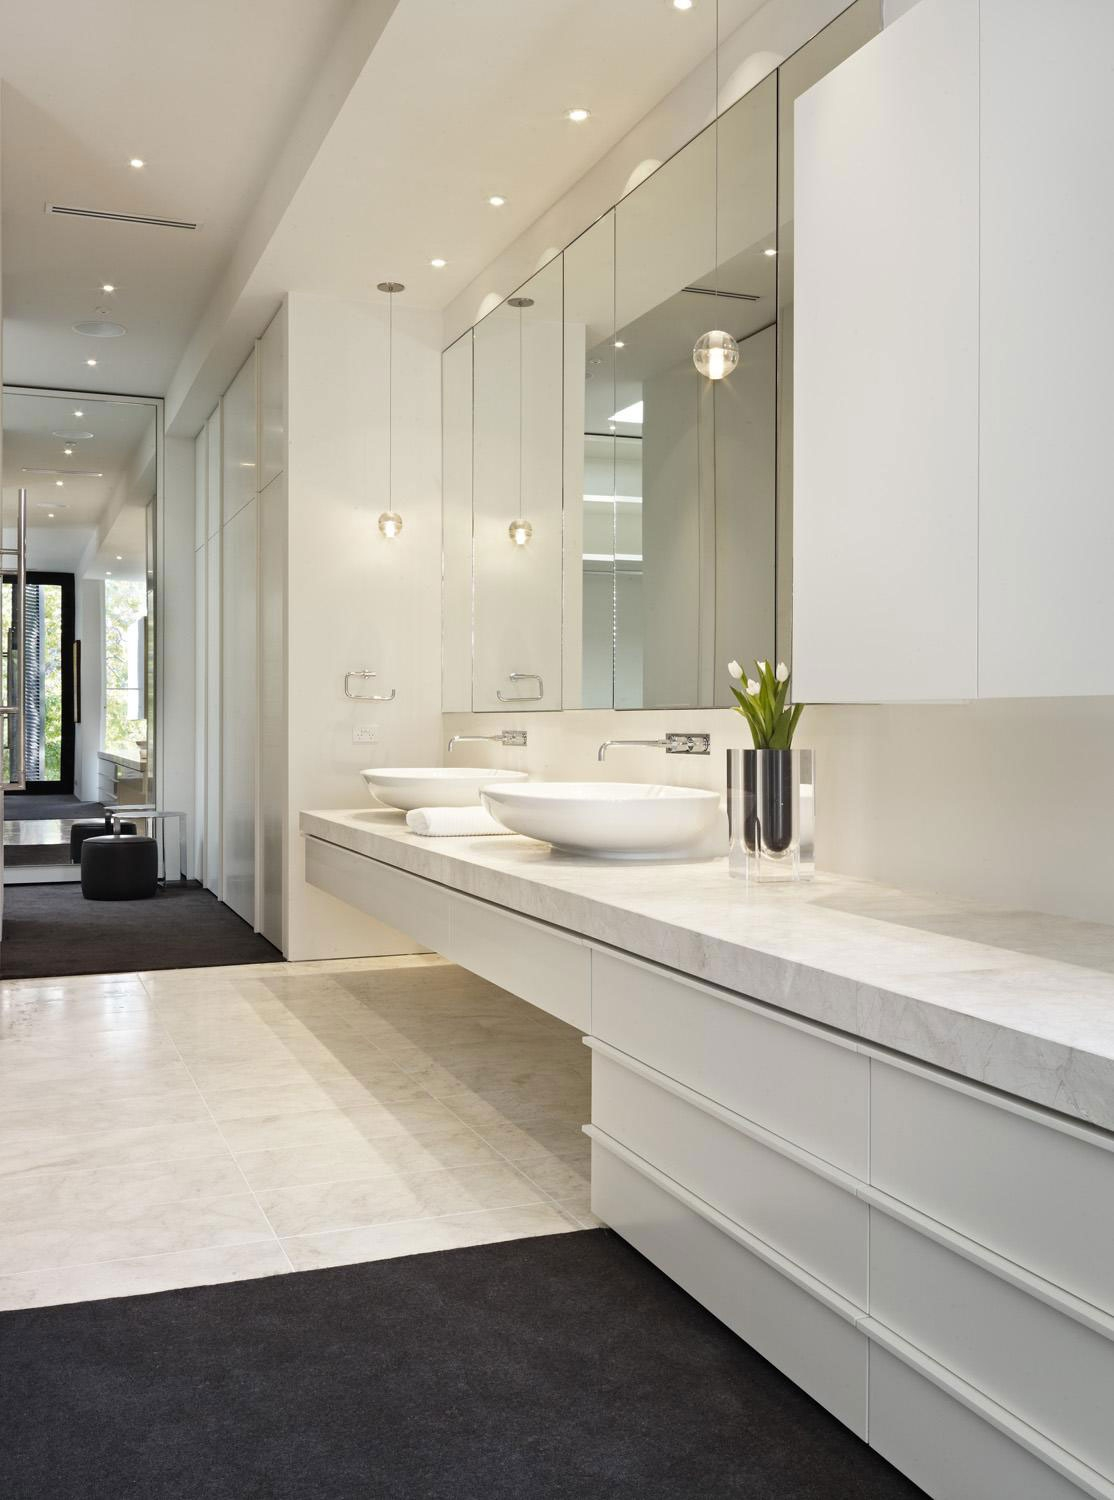 Large Frameless Bathroom Mirror Trends And Mirrors For Framed Intended For Frameless Large Mirrors (Image 7 of 15)